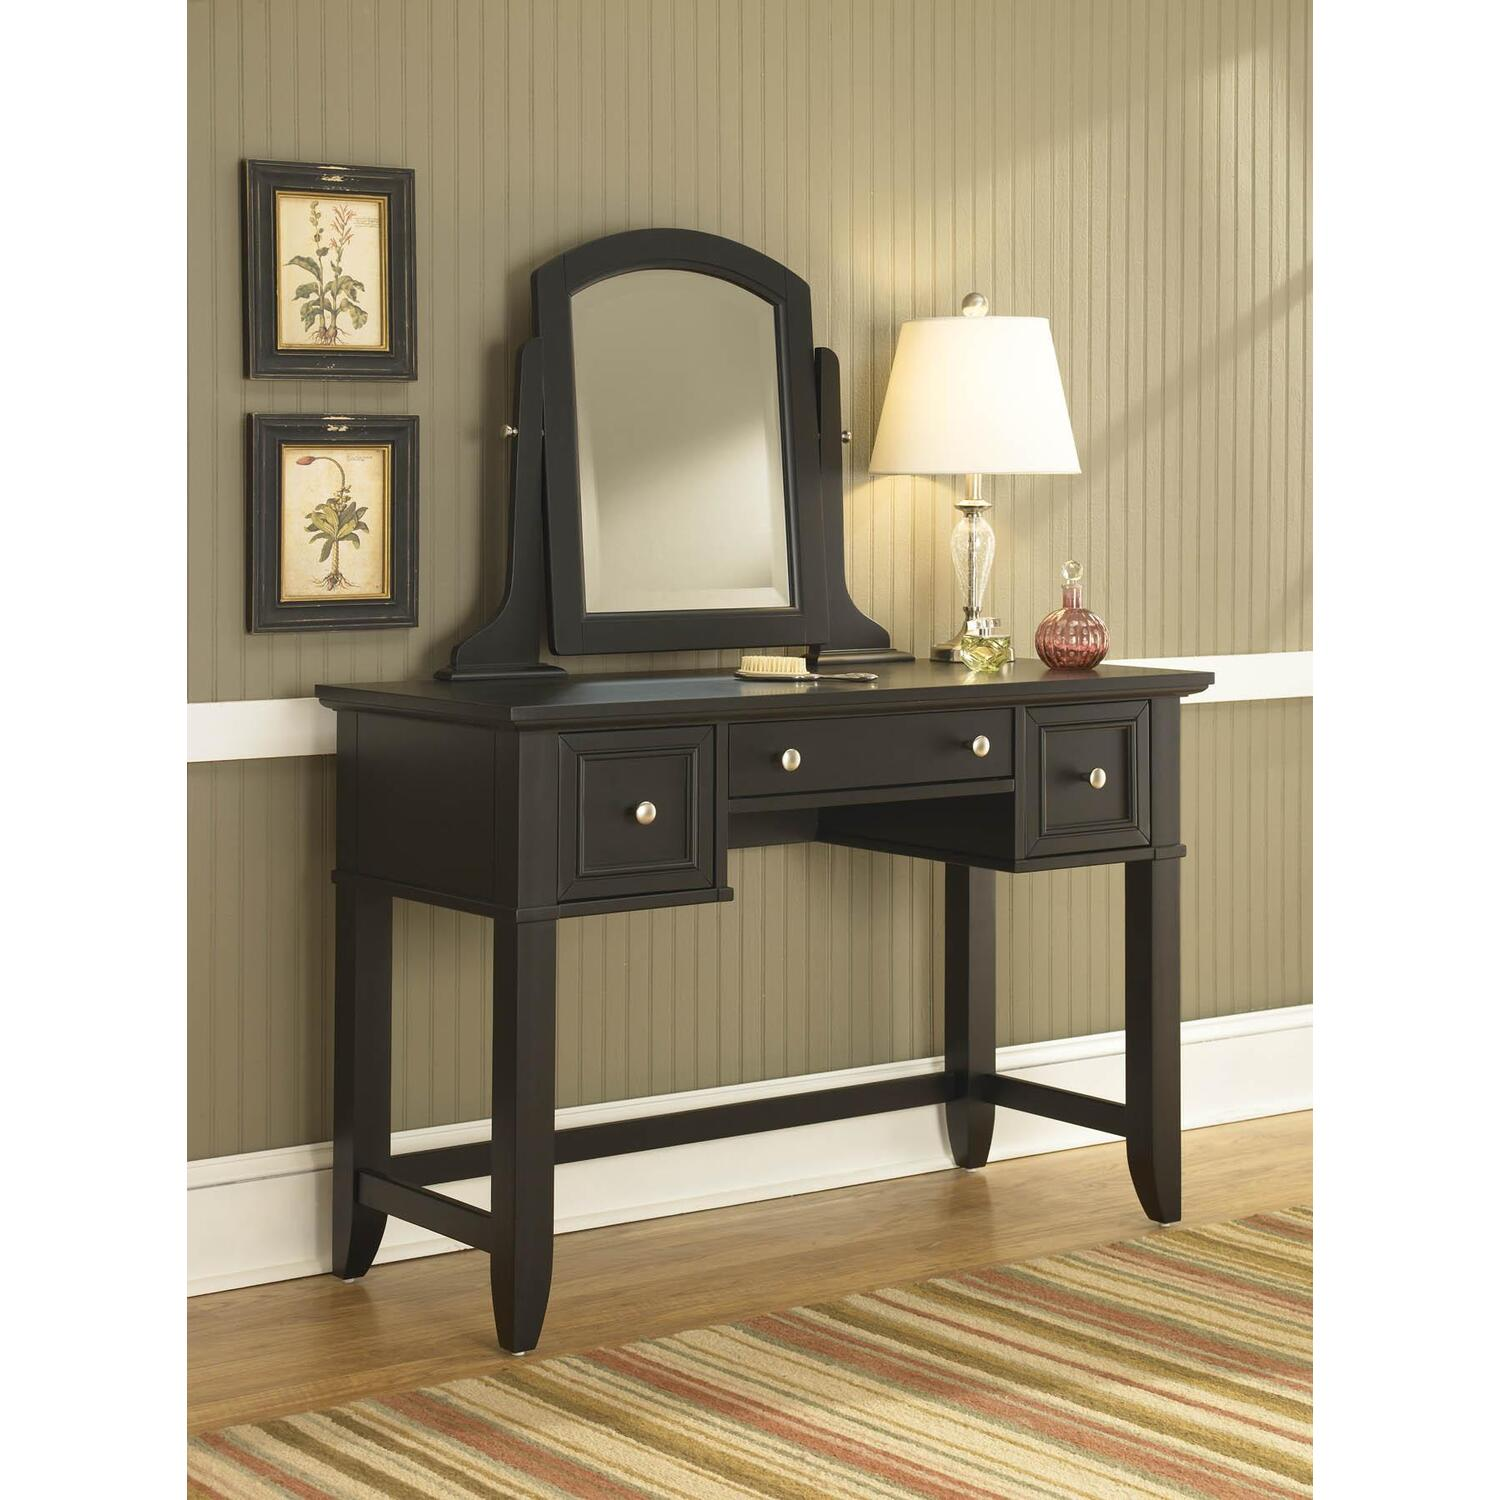 Home Styles Bedford Black Vanity Table By OJ Commerce 5531